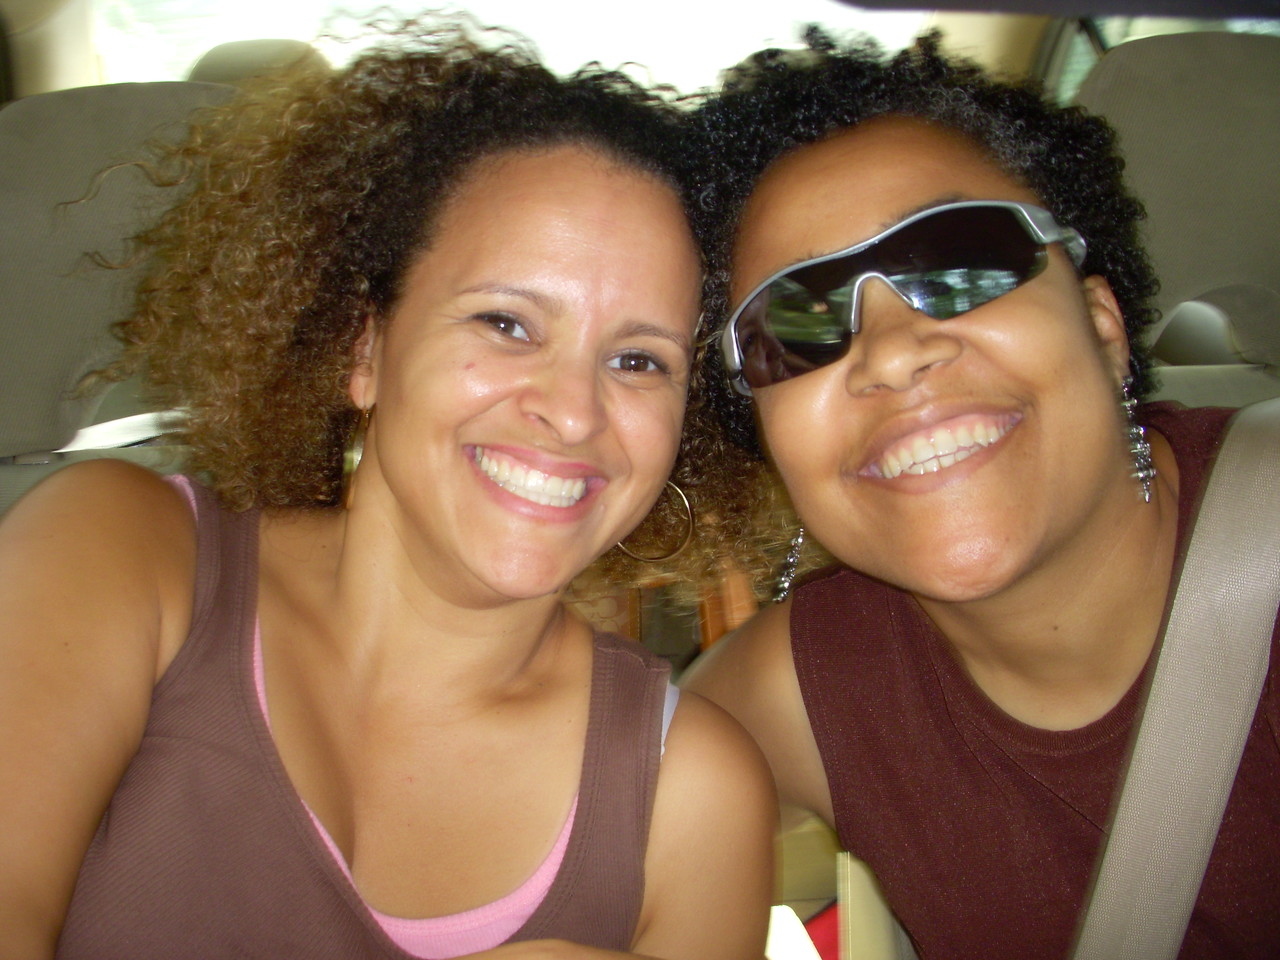 Road trip!!  I was blessed to have Candice as my roomie and traveling buddy.